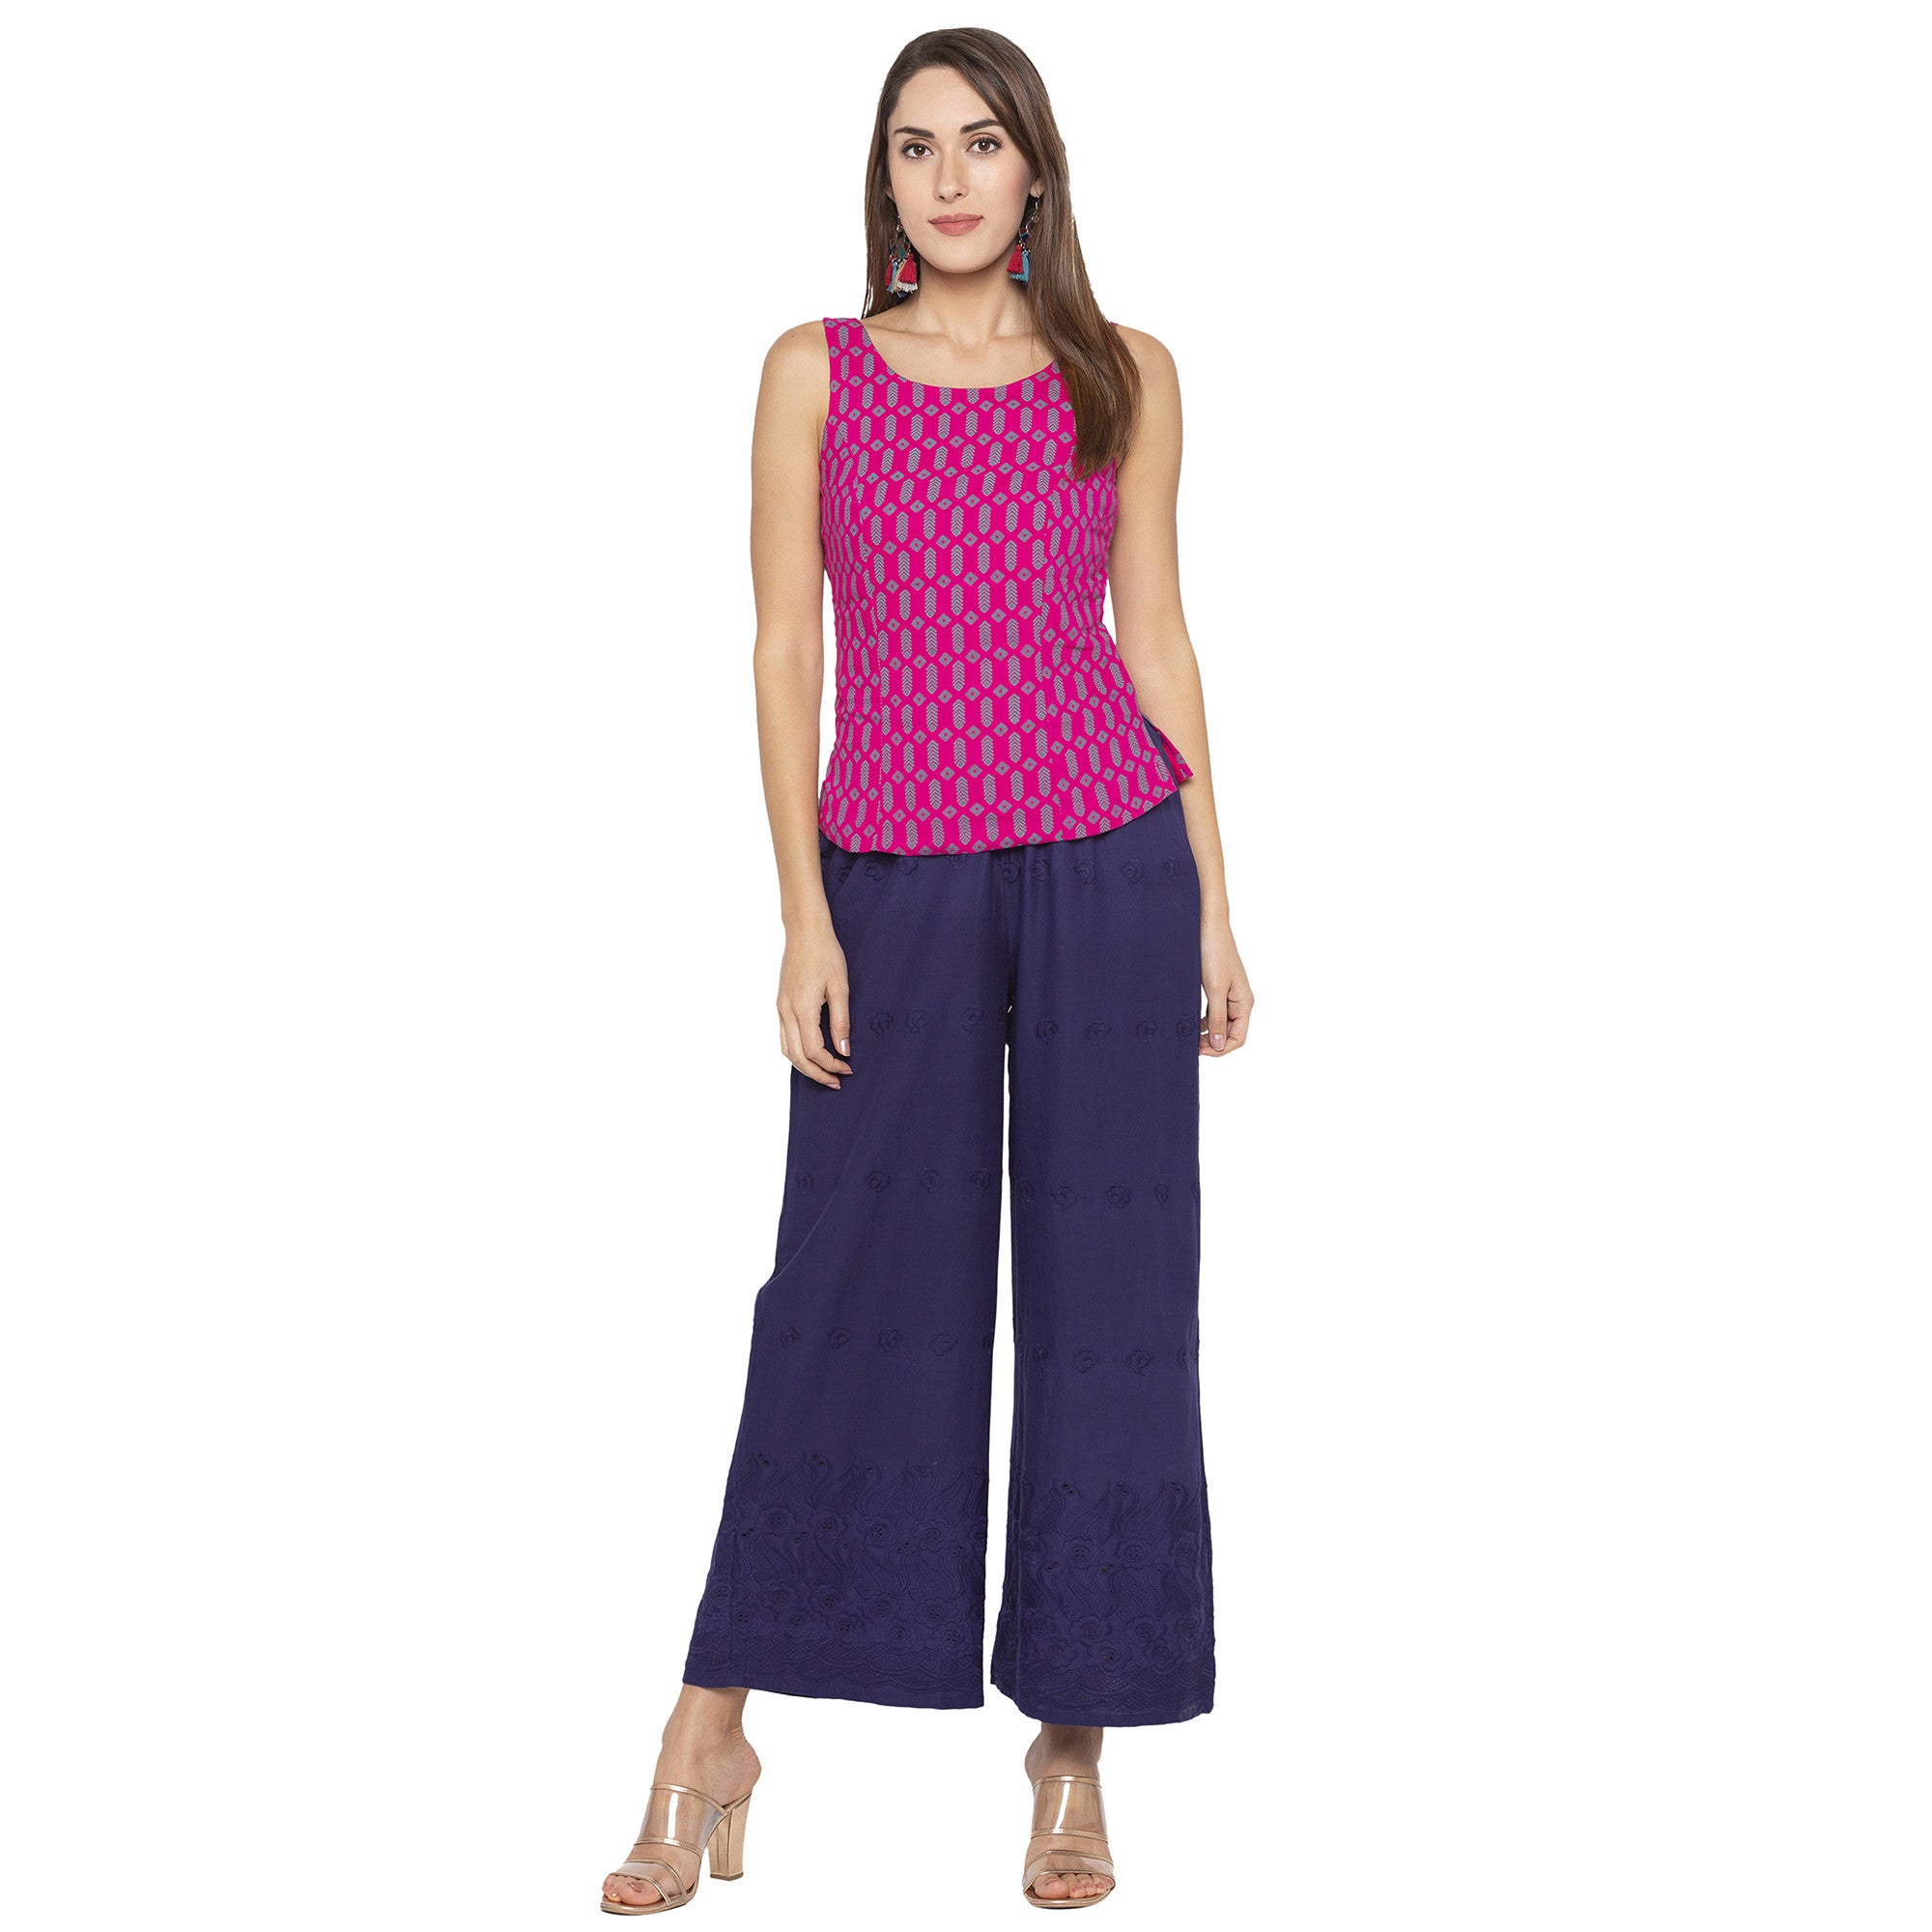 Casual Navy Blue Color Loose Fit Regular Parallel Trousers-4